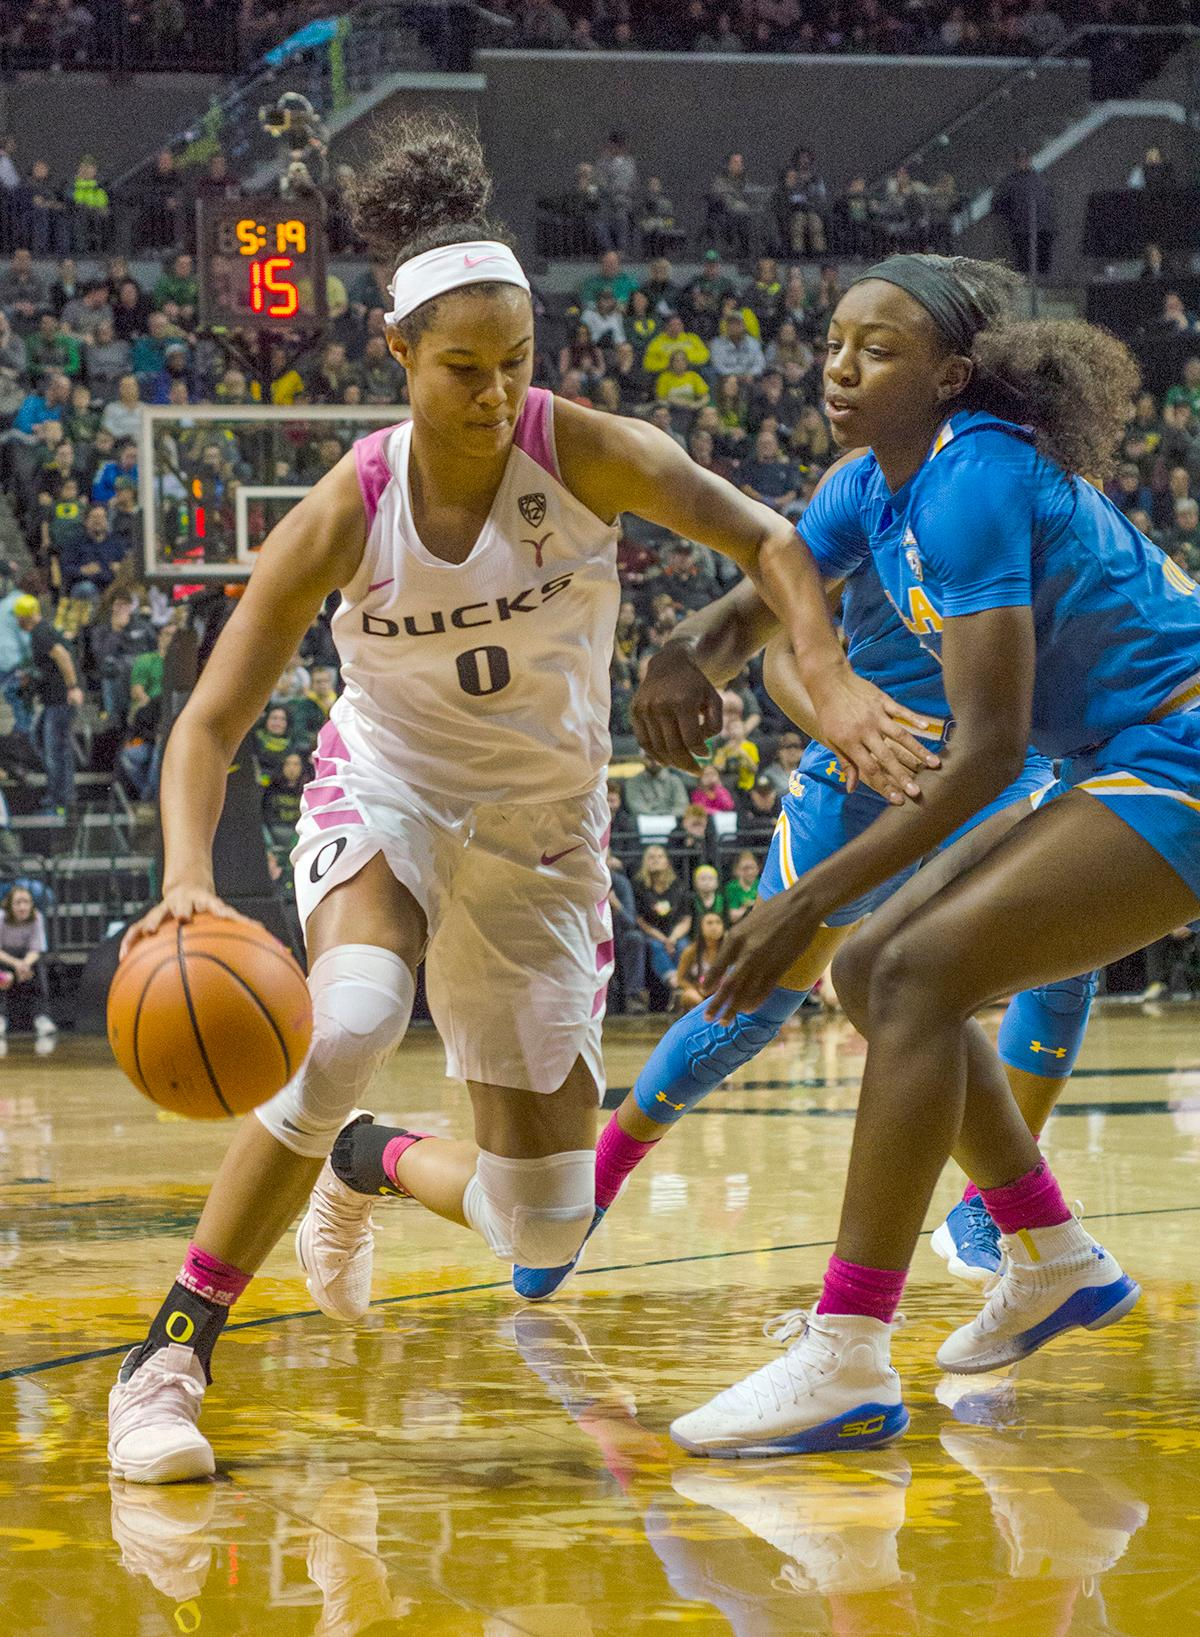 Oregon Ducks Satou Sabally (#00) drives past UCLA Bruins Michaela Onyenwere (#21). In front of a nearly sold out crowd of 7,098 very loud fans in Matt Knight Arena Monday night, the University of Oregon Women Ducks basketball team defeated UCLA 91-90 in overtime in their last game of the regular season. The Ducks are now 14-2 in conference play and UCLA falls to 12-4. Satou Sabally lead the way with 23 points, Maite Cazorla added 22, Sabrina Ionescu put up 16 and Ruthy Hebard ended the night with 14. At the end of the game graduating seniors Lexi Bando (#10) and Justine Hall (#3) were honored in a ceremony with Coach Kelly Graves and the team. Photo by Emily Gonzalez, Oregon News Lab